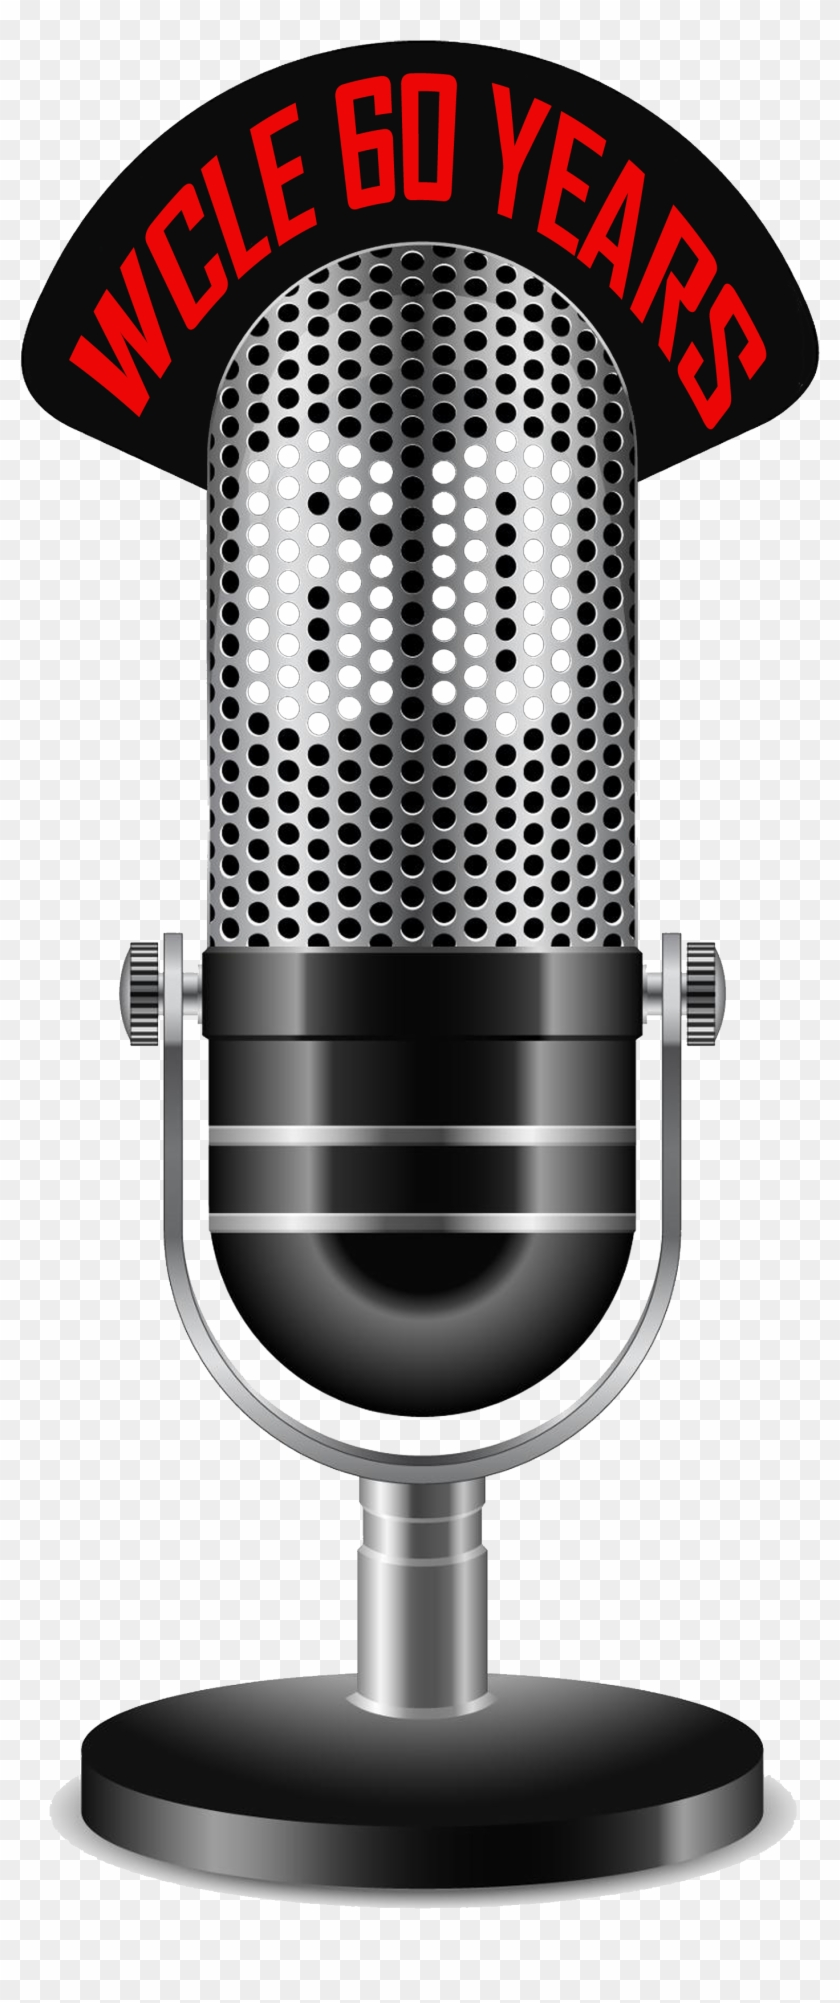 Wcle Th Anniversary Of Radio Wclelogo - Microphone On The Air Clipart #2406577